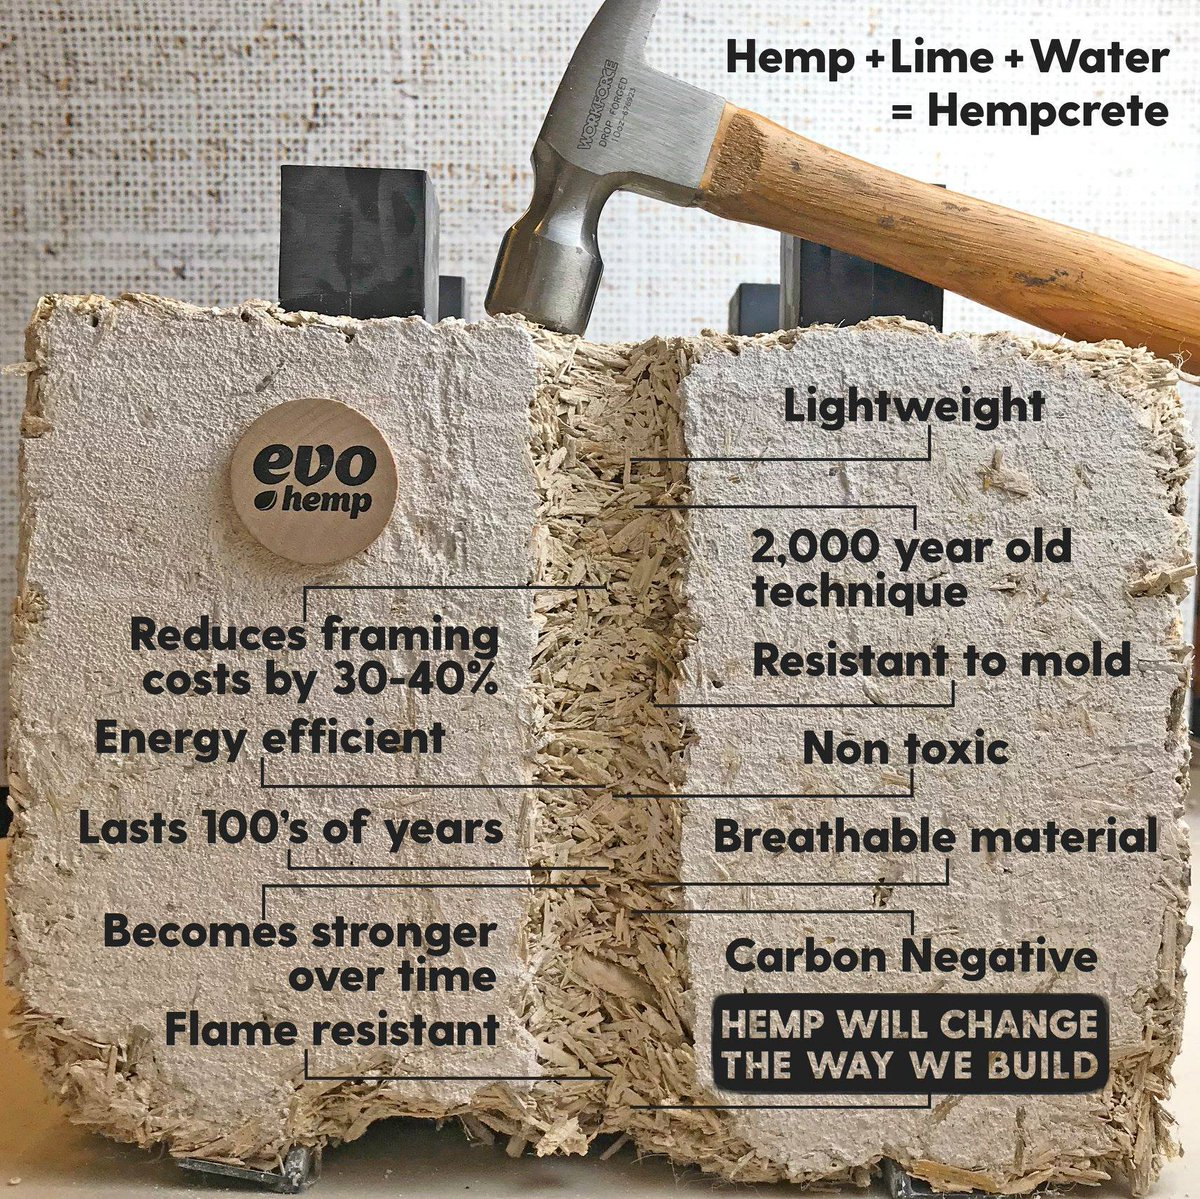 Construction is responsible for half of all non-renewable resources we consume. The solution: Hempcrete, a carbon negative building material that will #ChangeTheWorld <br>http://pic.twitter.com/MekMJqjf5q